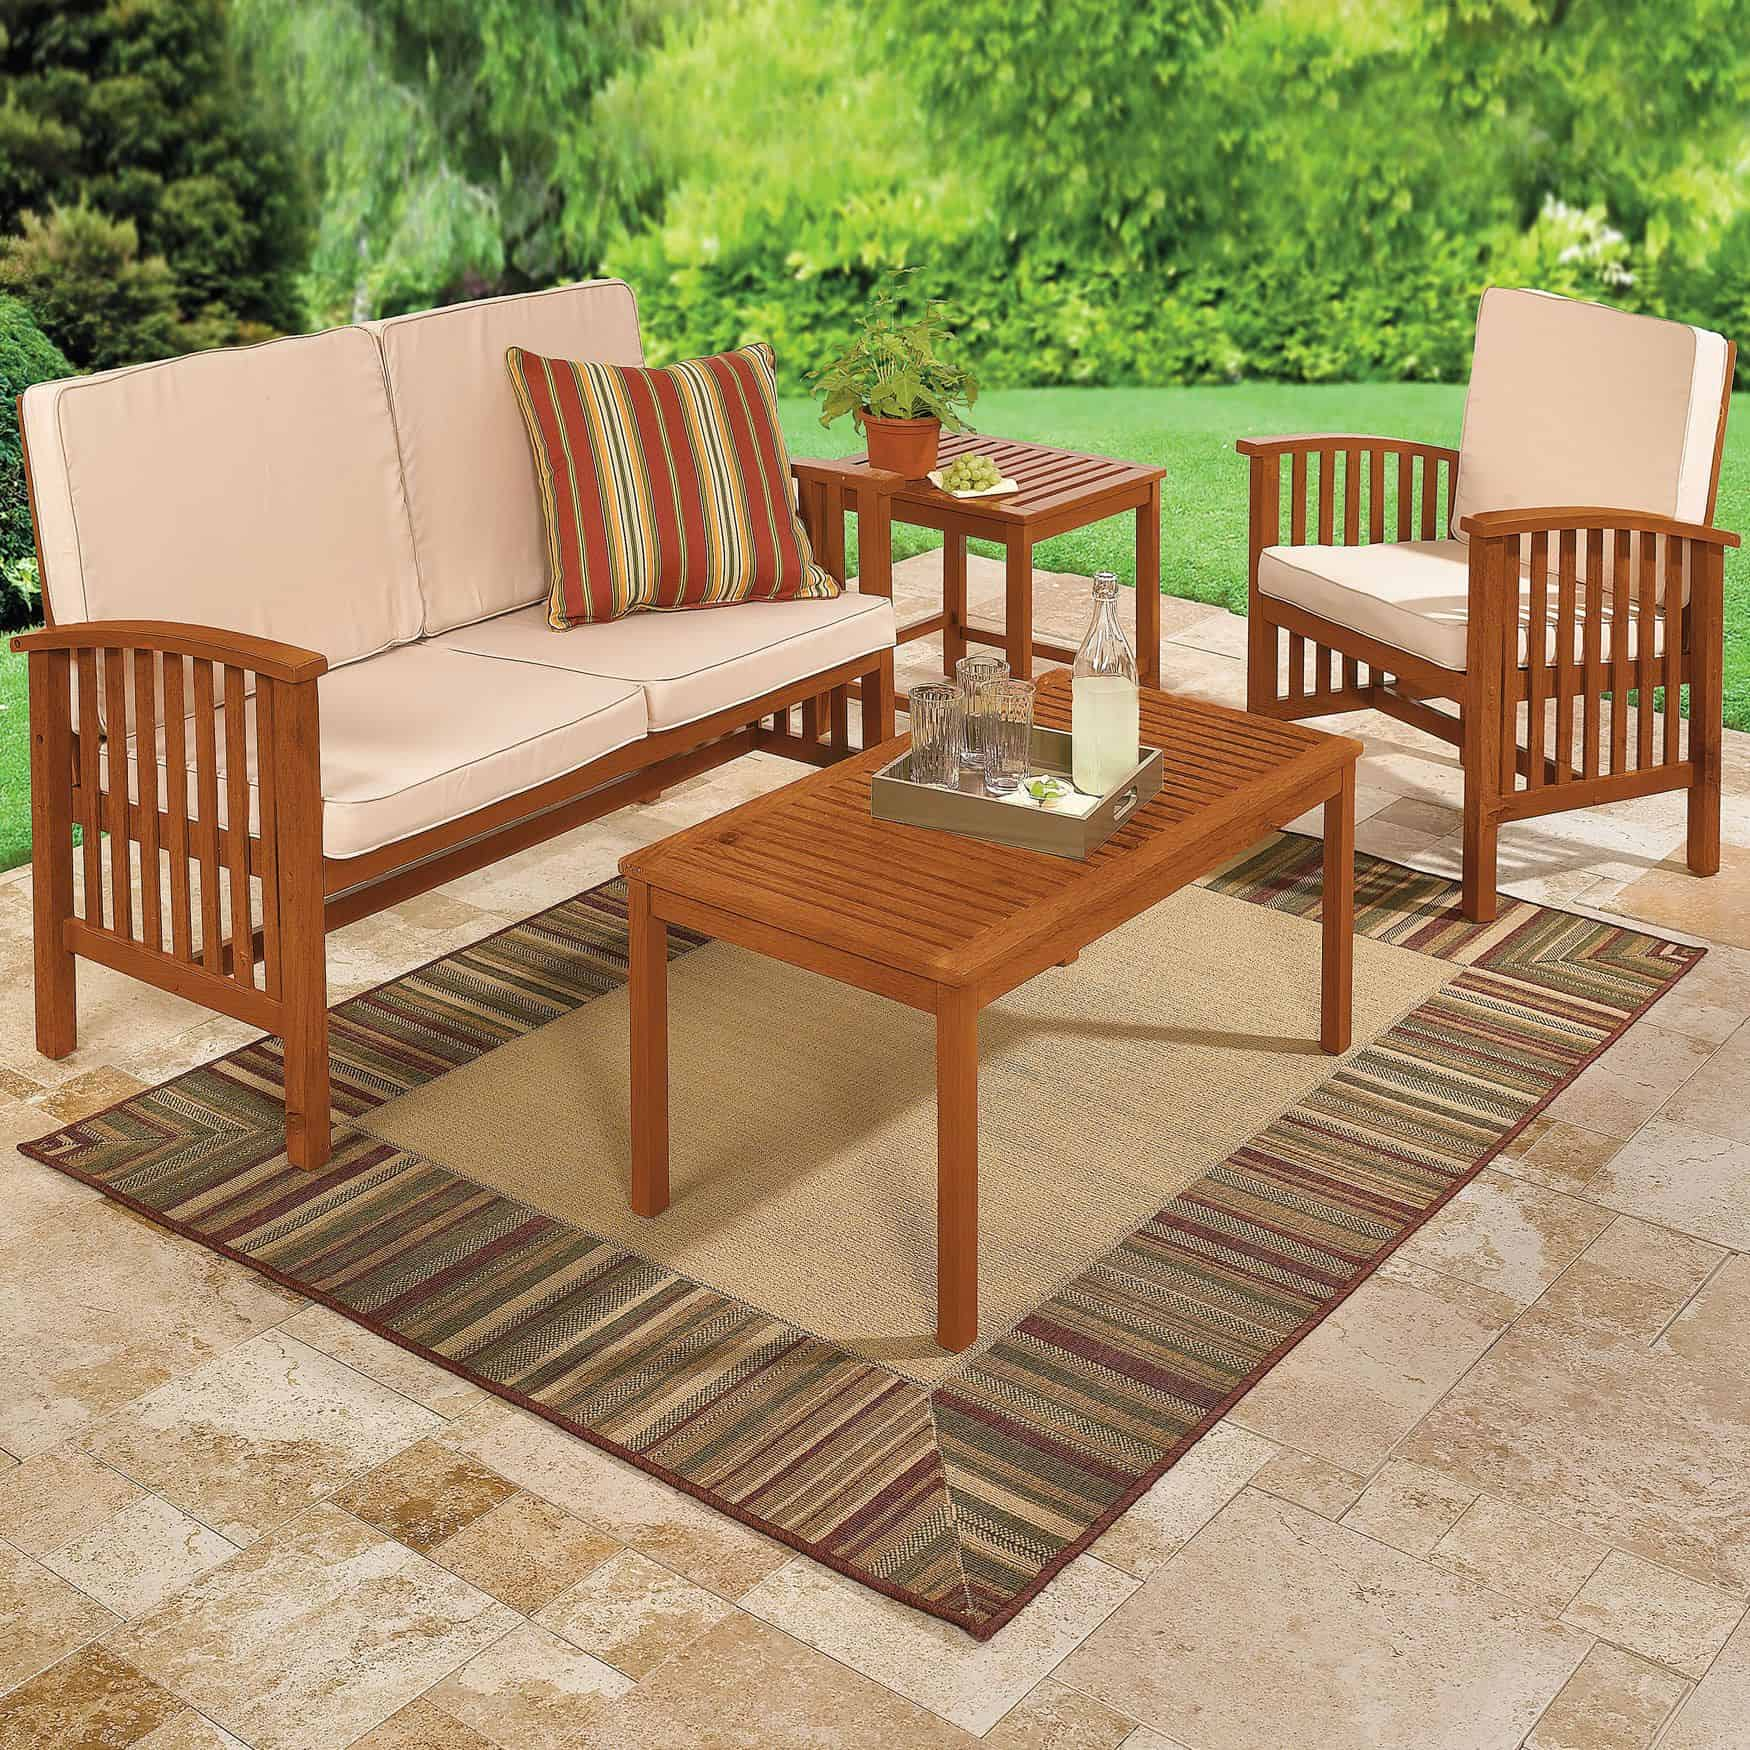 Stylish Summer with BrylaneHome Outdoor Furniture 5 Minutes for Mom